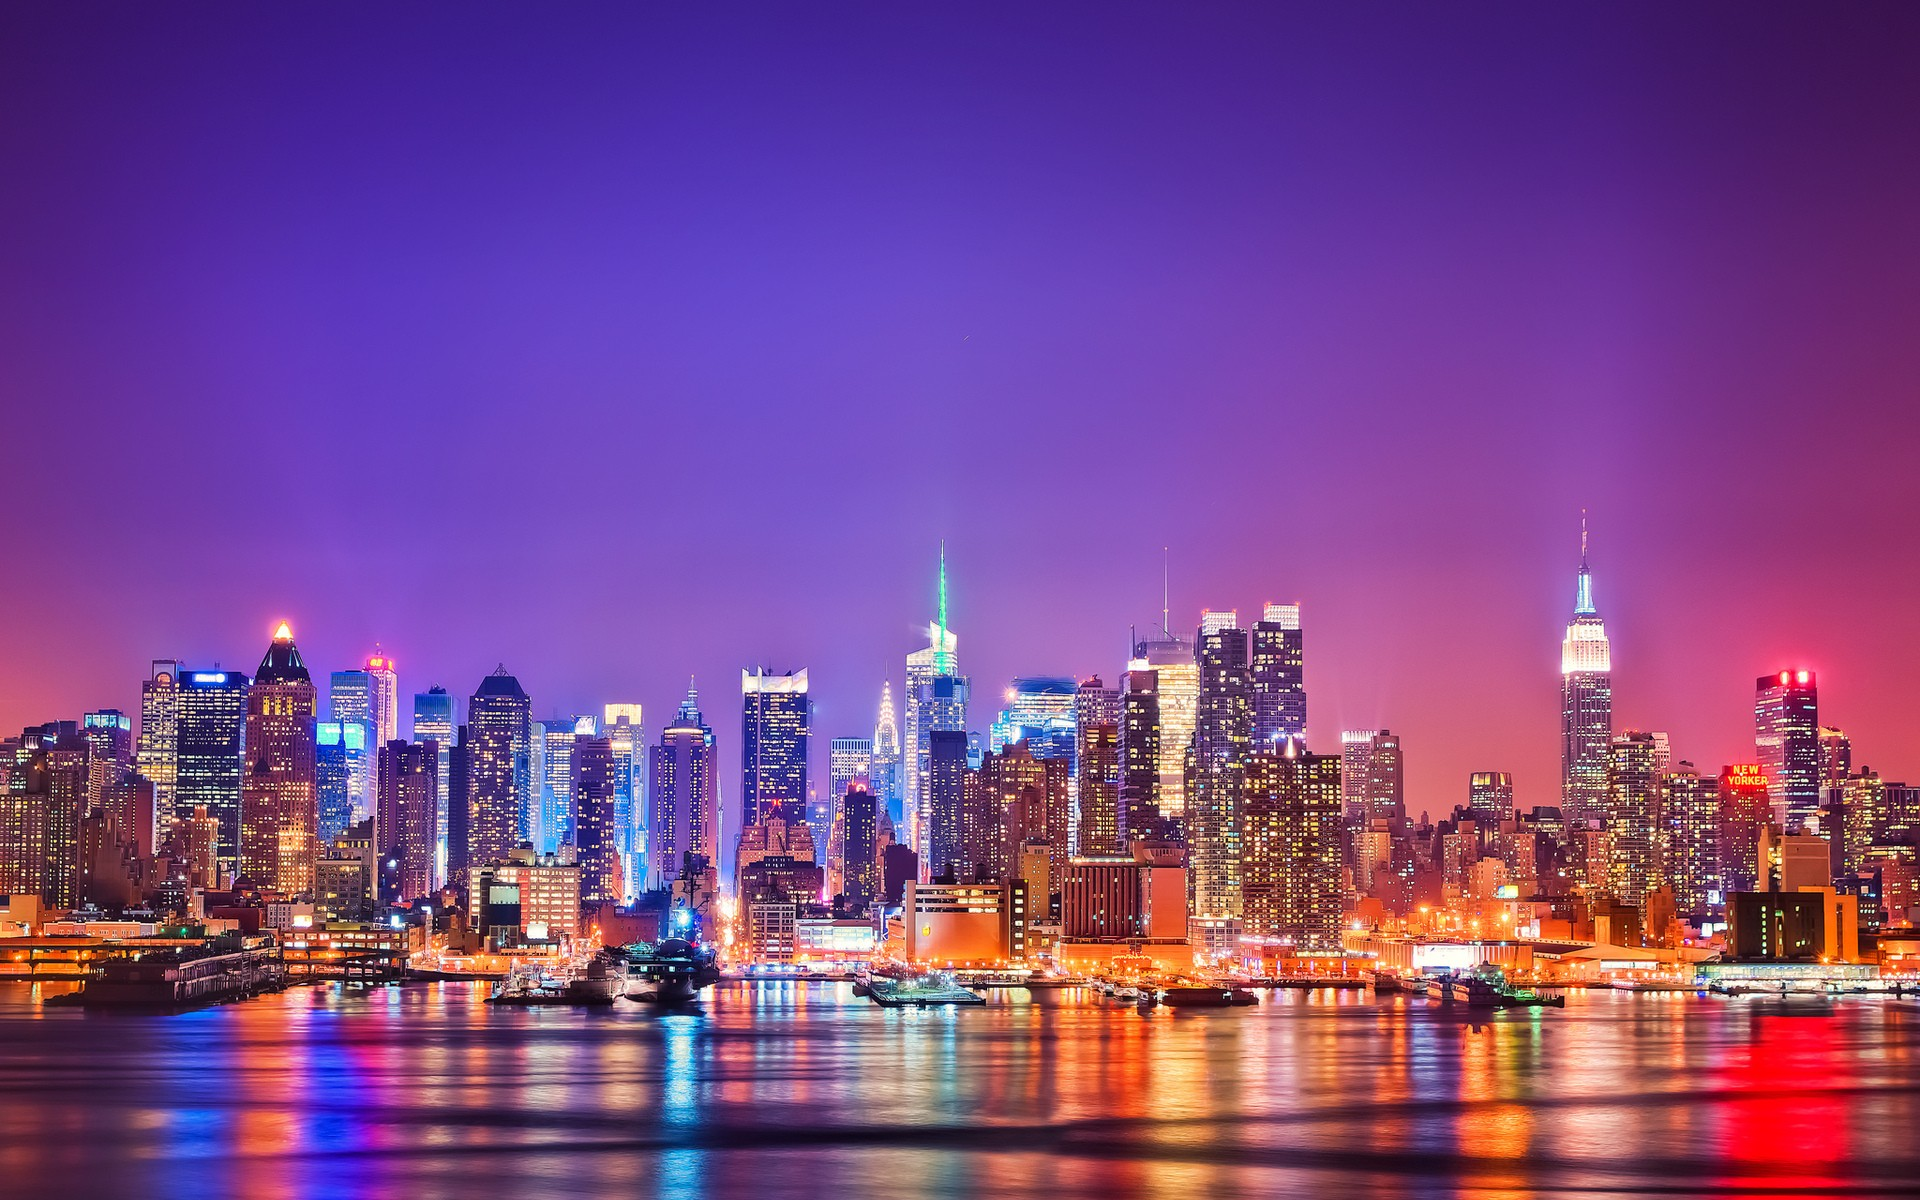 Amazing Images from New York City